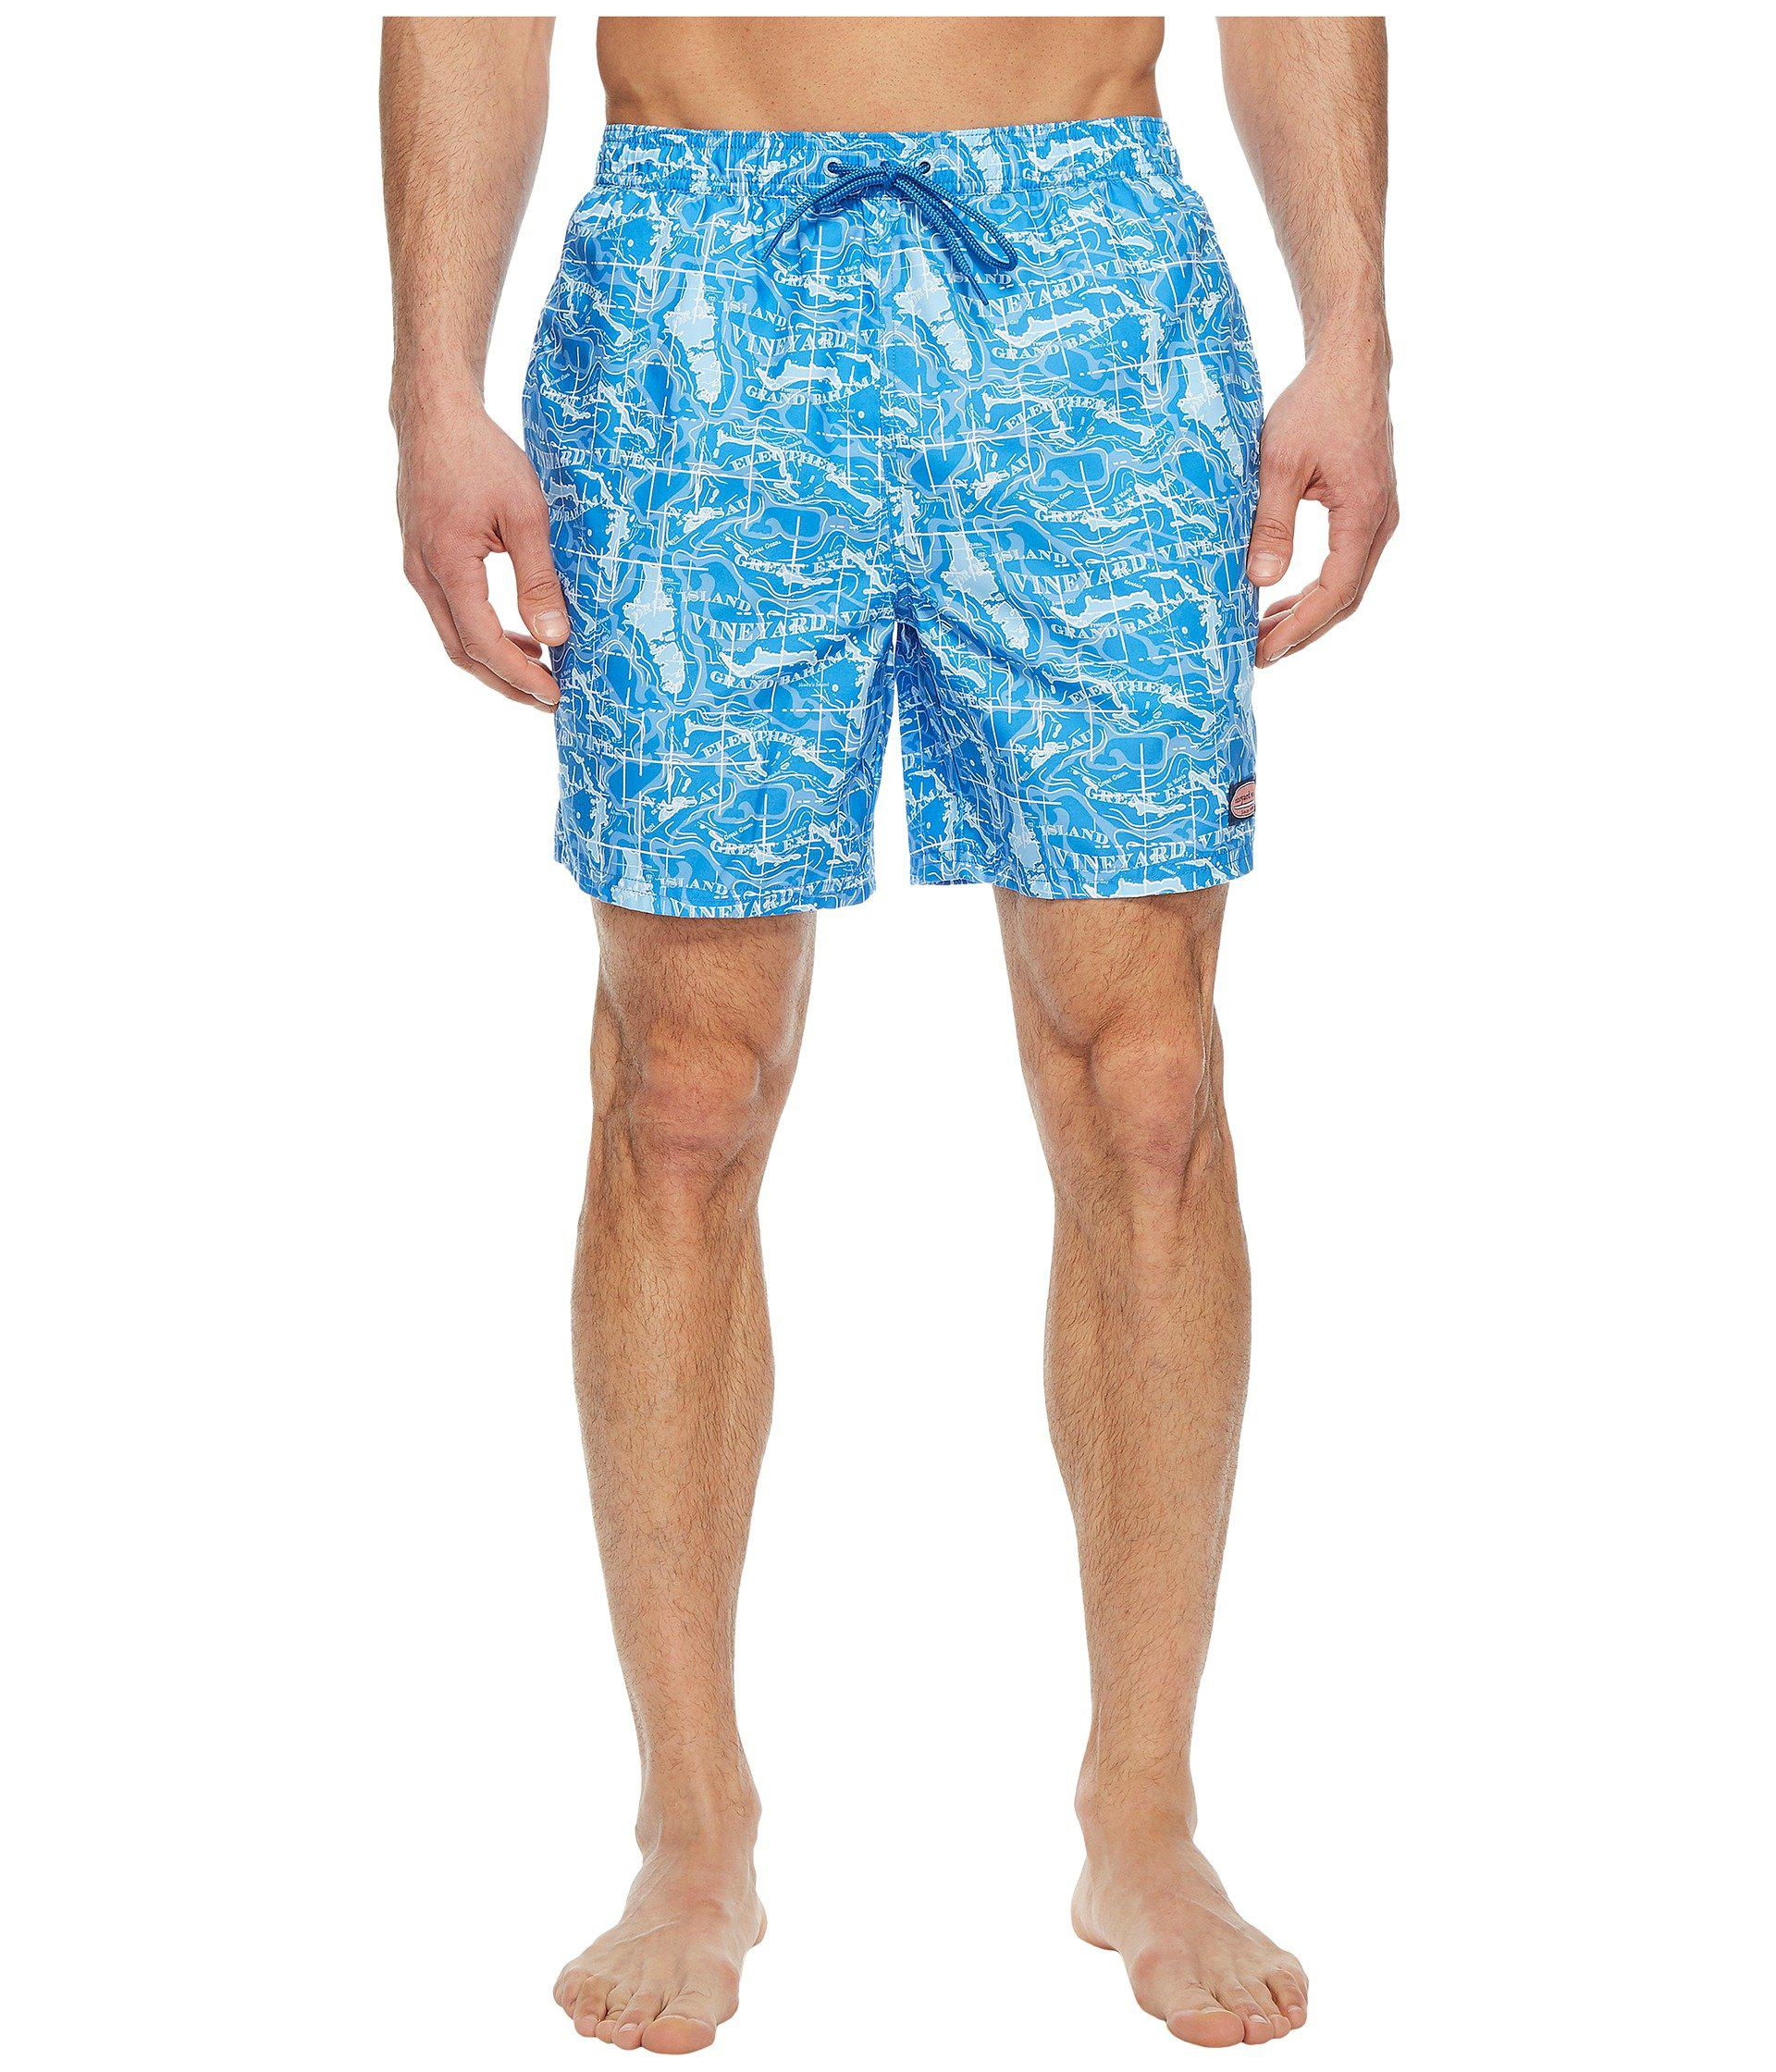 d83a53f1a2 Lyst - Vineyard Vines Bahama Map Chappy Swim Trunks in Blue for Men